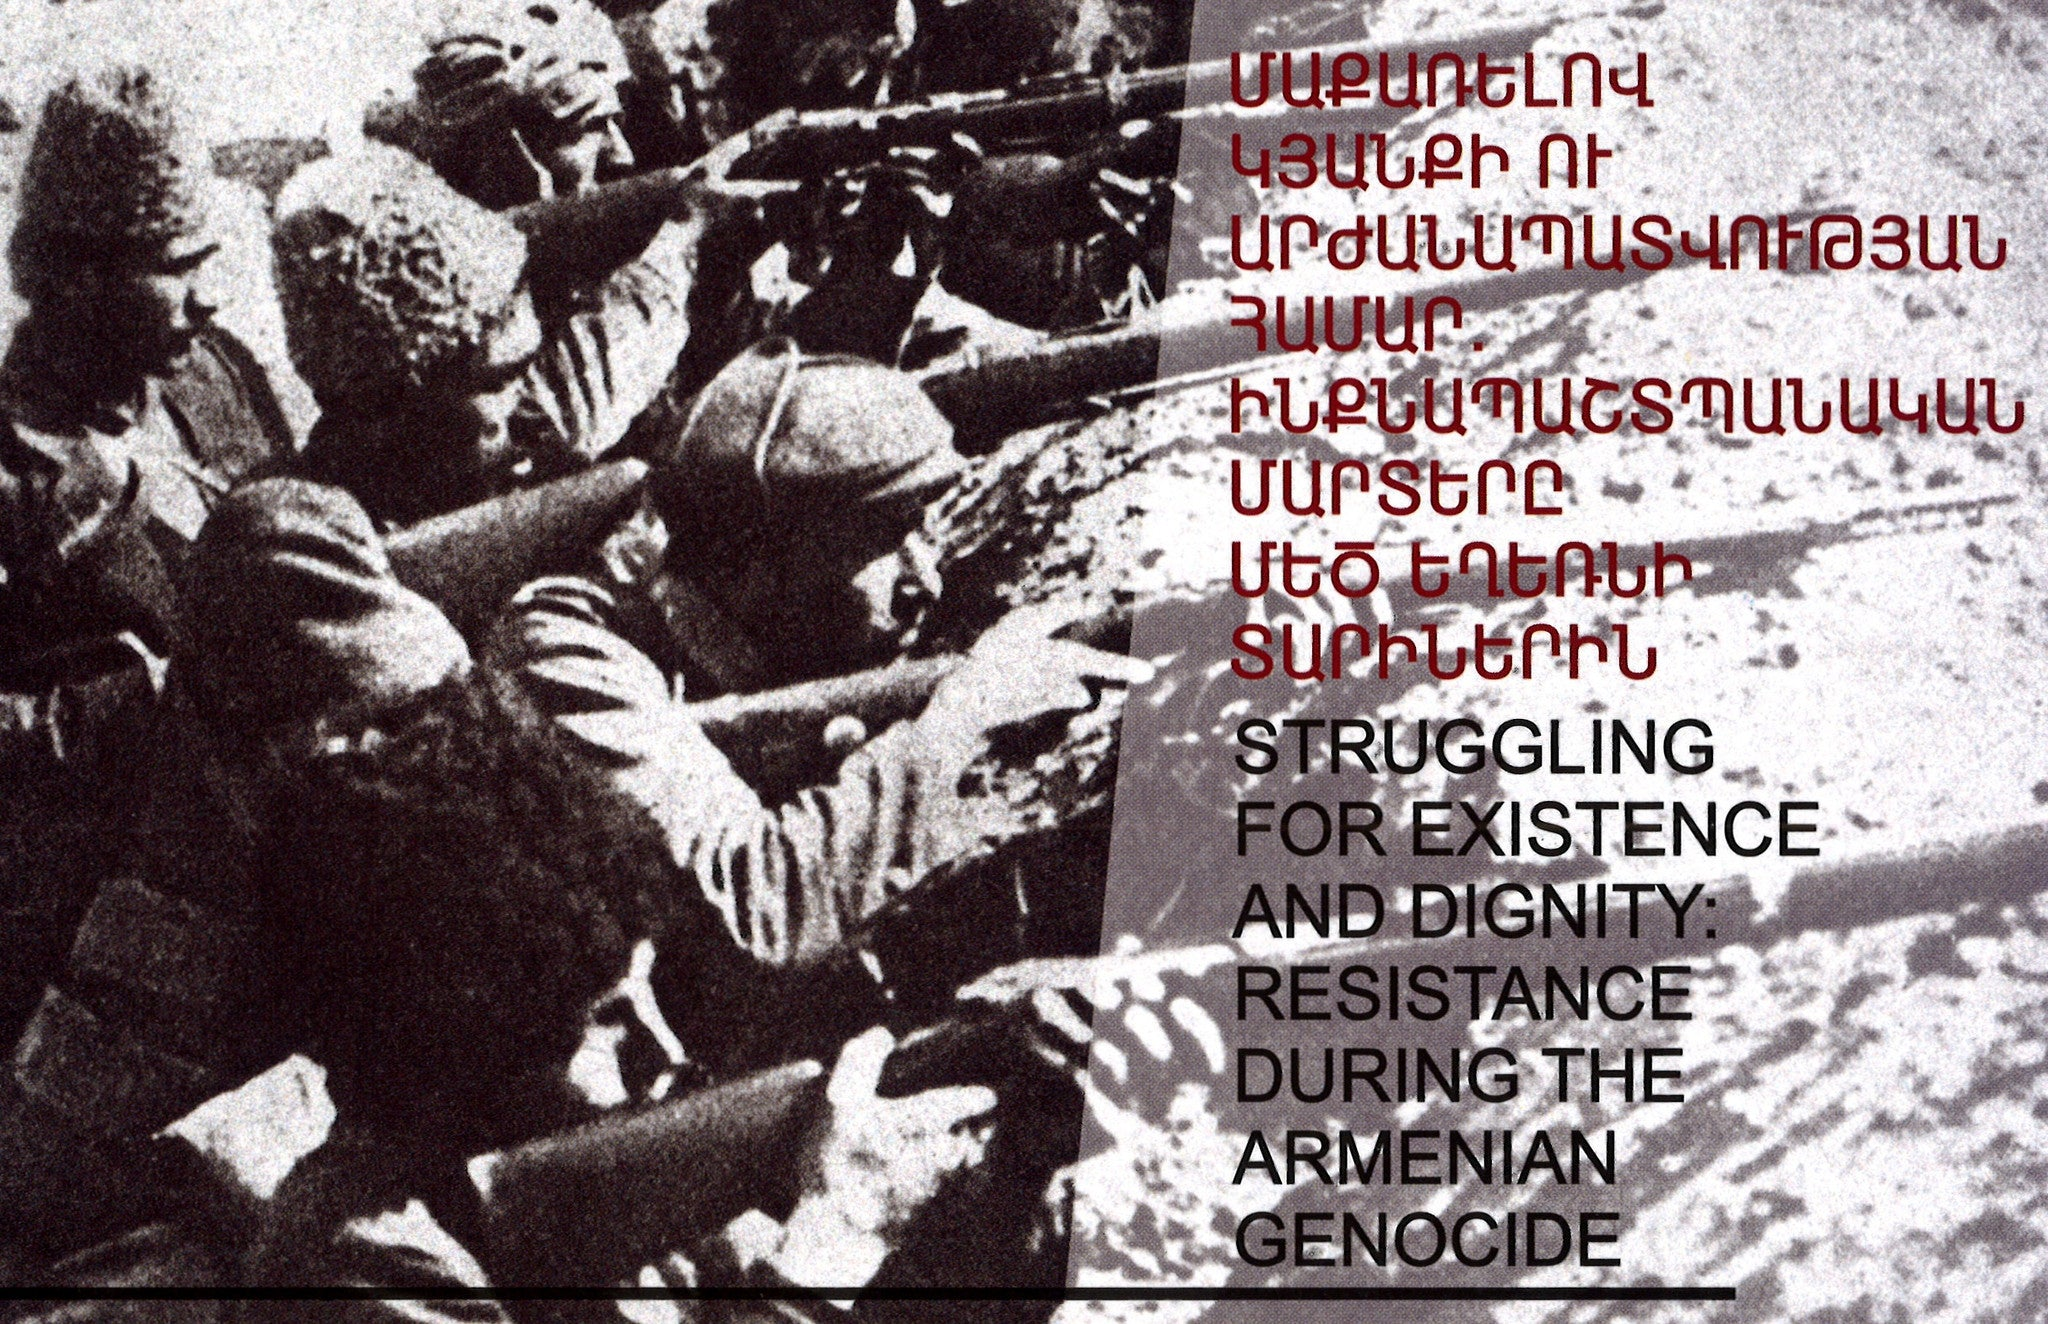 STRUGGLING FOR EXISTENCE AND DIGNITY: RESISTANCE DURING THE ARMENIAN GENOCIDE